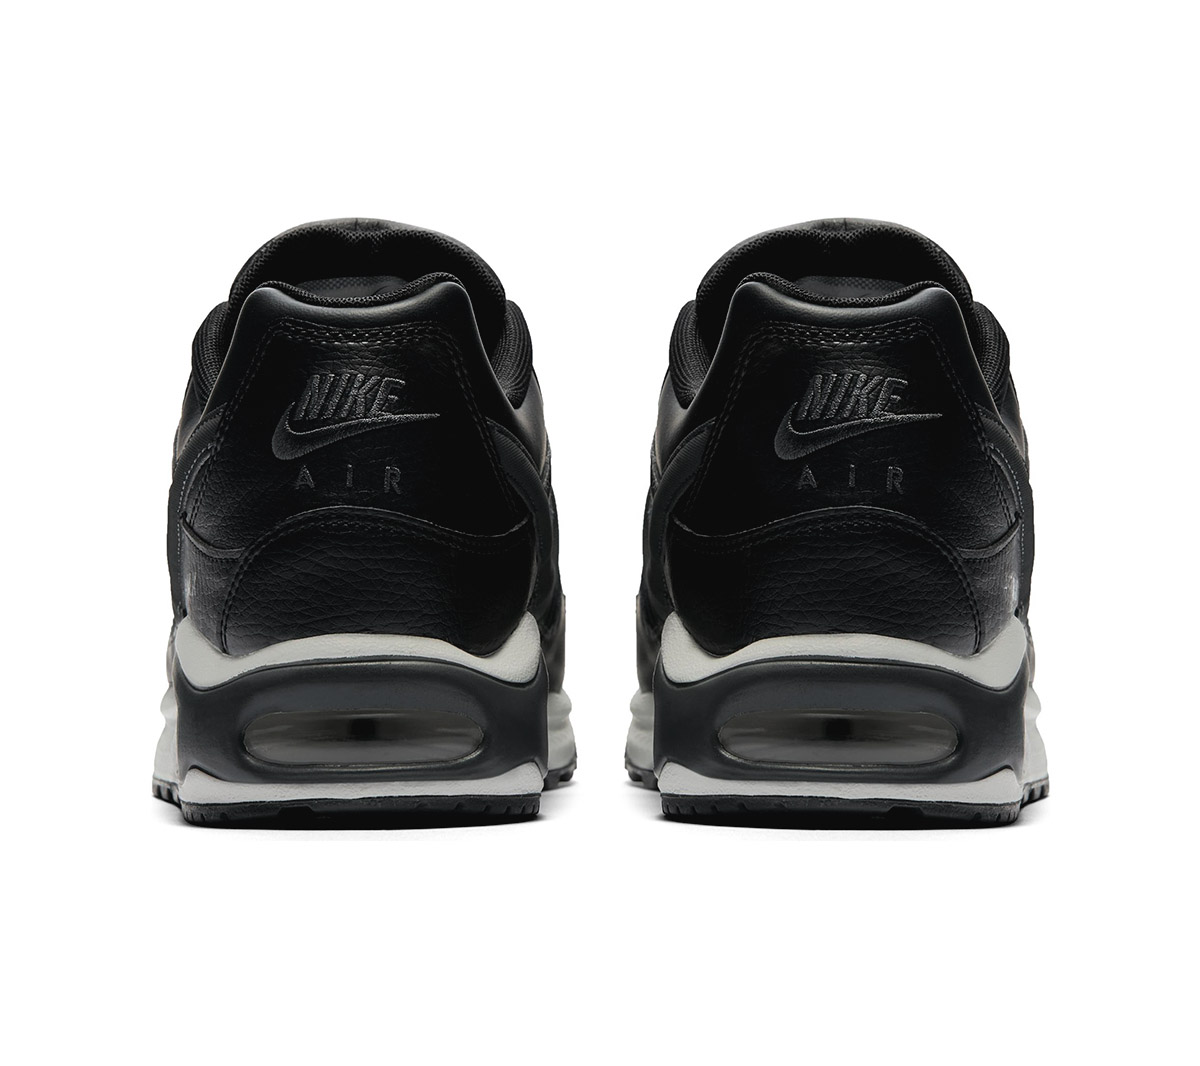 452df29cd3 Nike Air Max Command Leather Men s Sneakers Shoes Leather Black ...